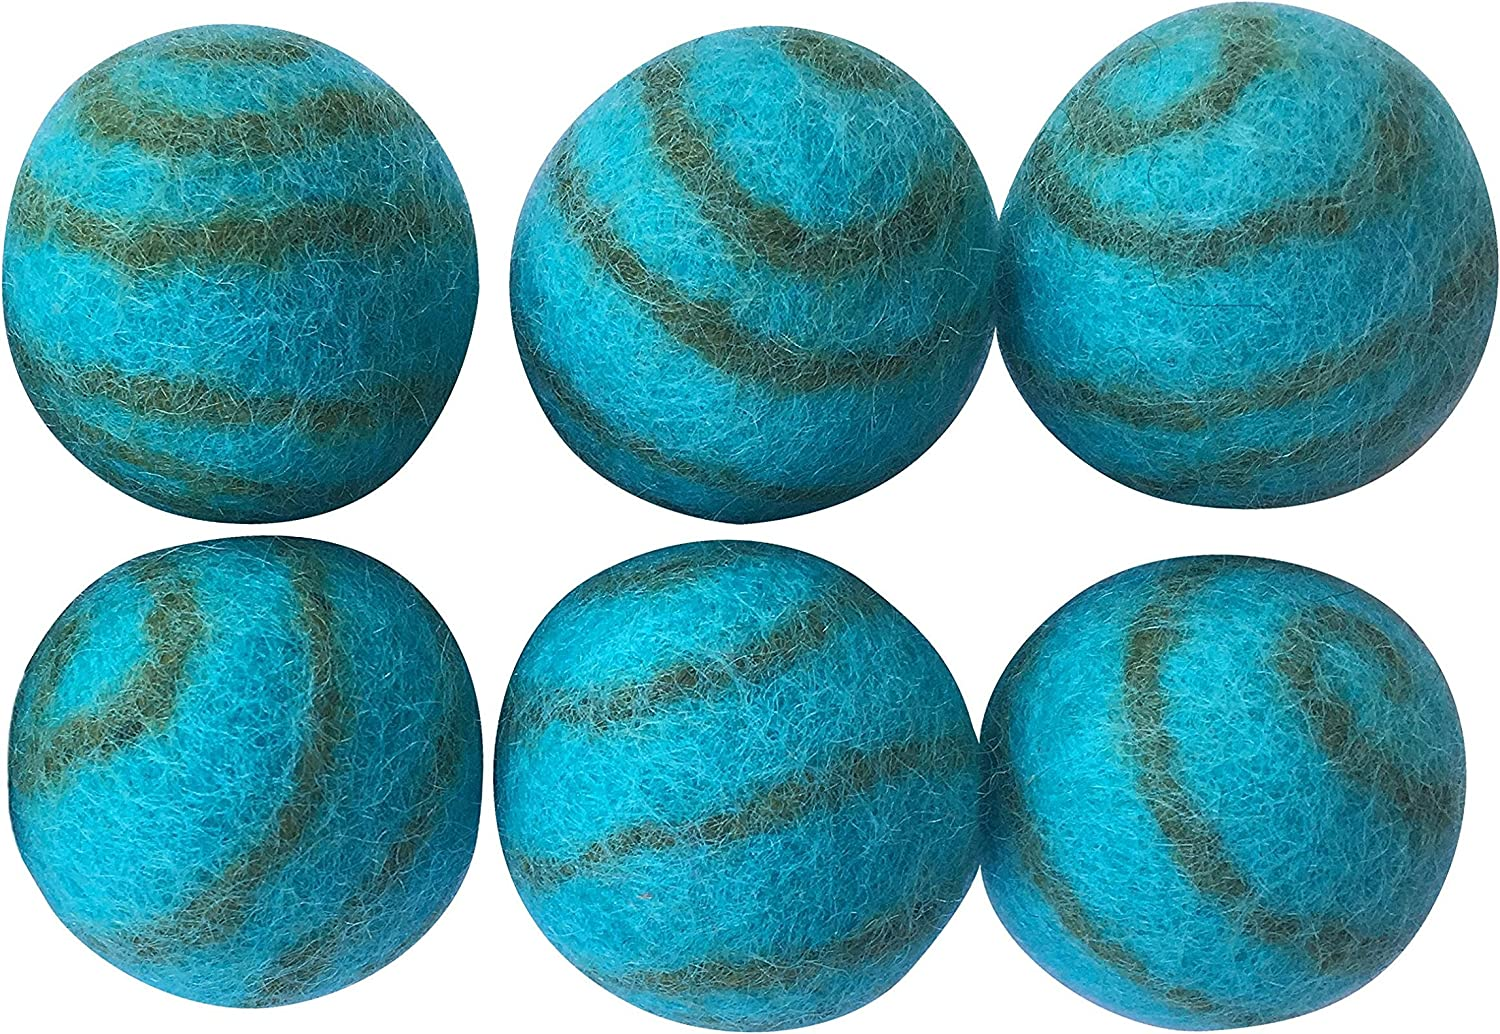 Pet Max 60% OFF Pizazz 100% Fort Worth Mall Wool Cat Ferret Dog Small 6-Pack Toy Ball